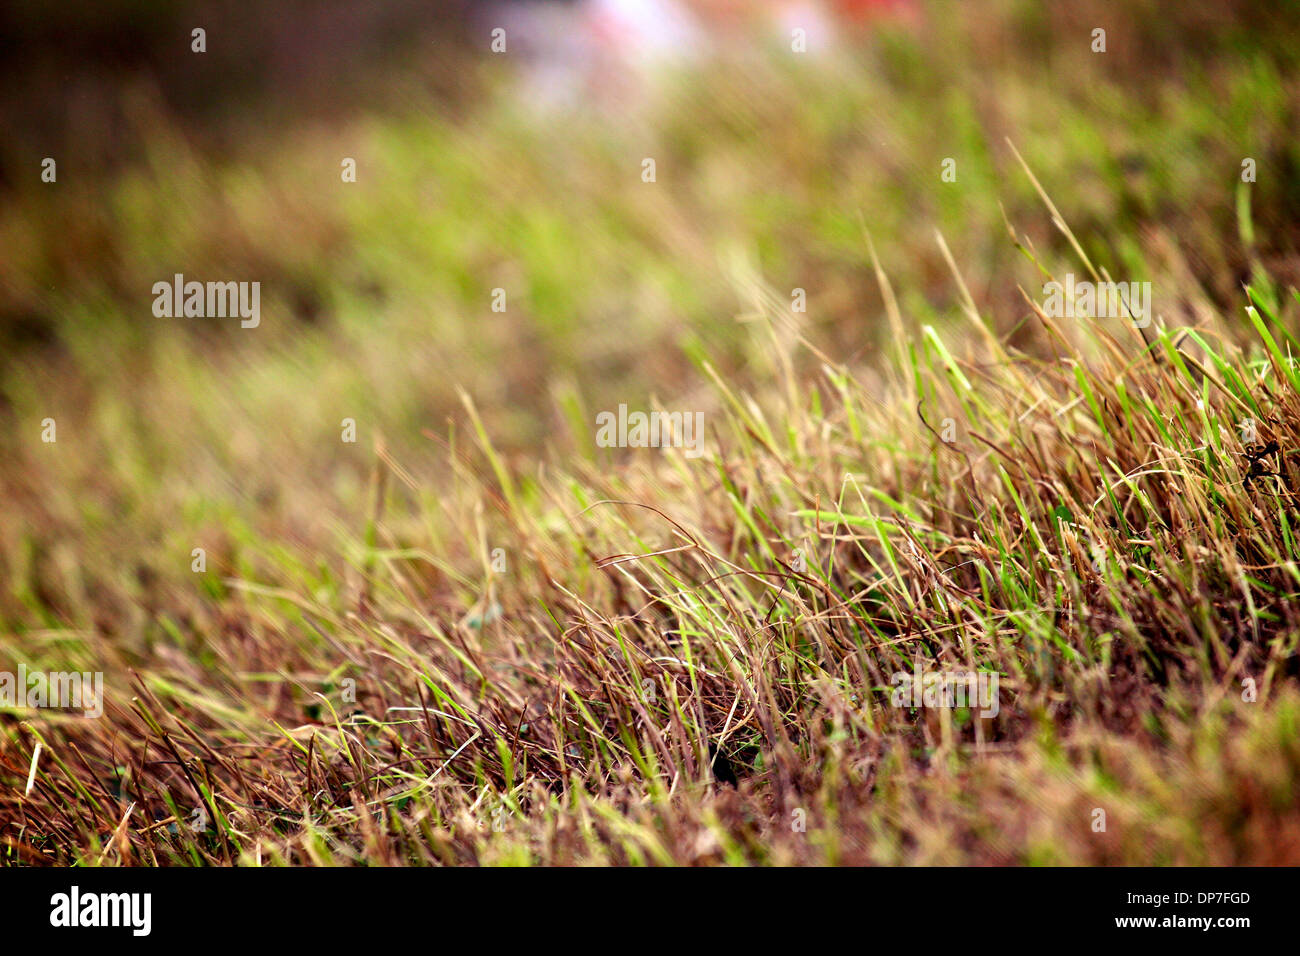 Sun burnt and dried / dead grass following dry period of no rain - Stock Image